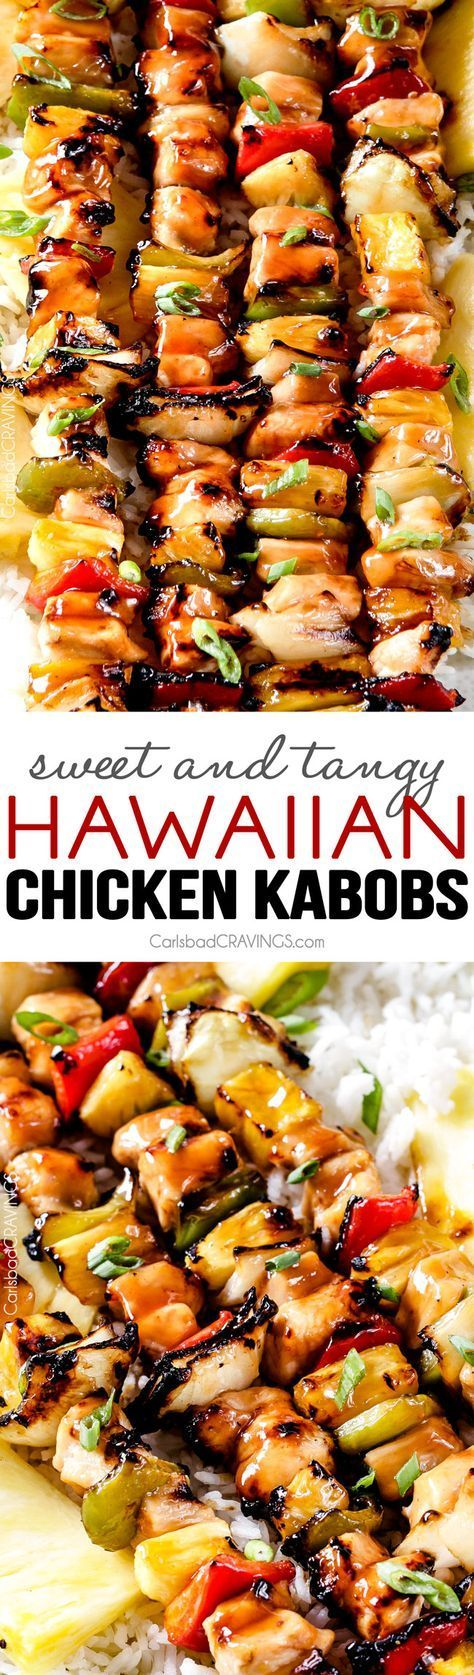 Grilled (or broiled) Hawaiian Chicken Kabobs - this is my new favorite grill recipe! the chicken is so juicy and flavorful and the sweet and tangy Hawaiian Sauce (that doubles as a marinade) is out of this world!